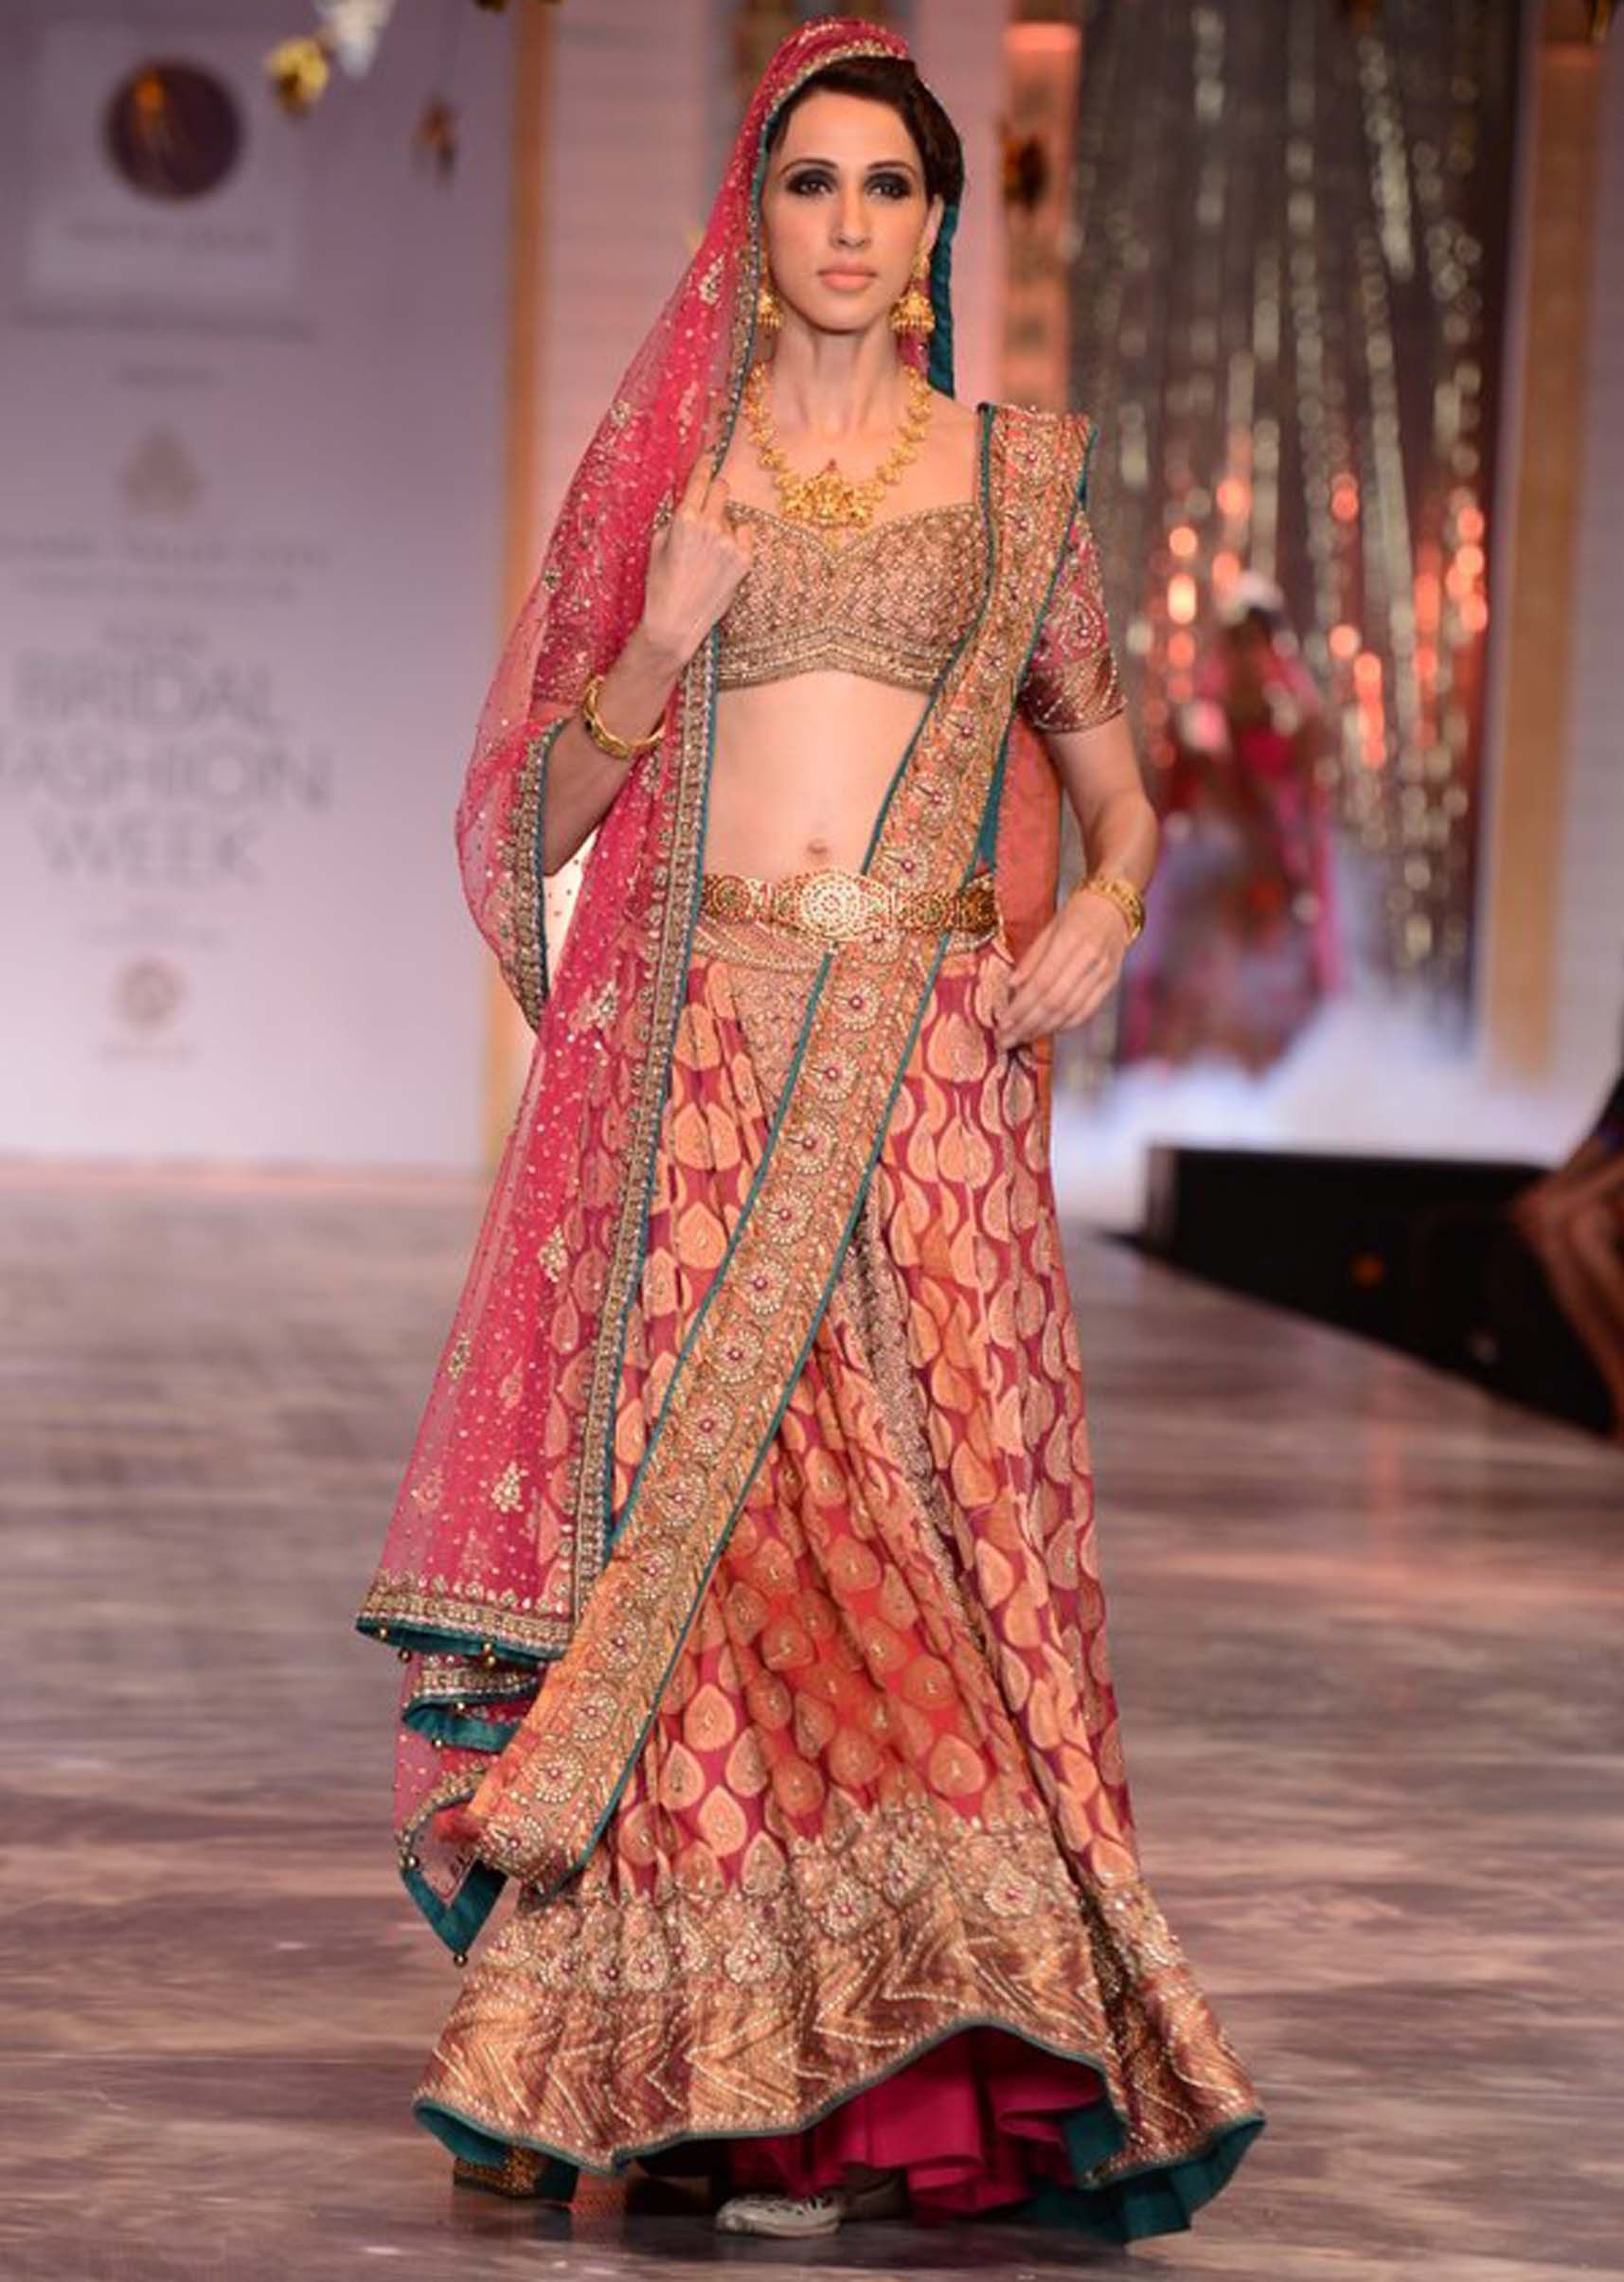 Traditional Indian Clothing Wedding Dresses For Women